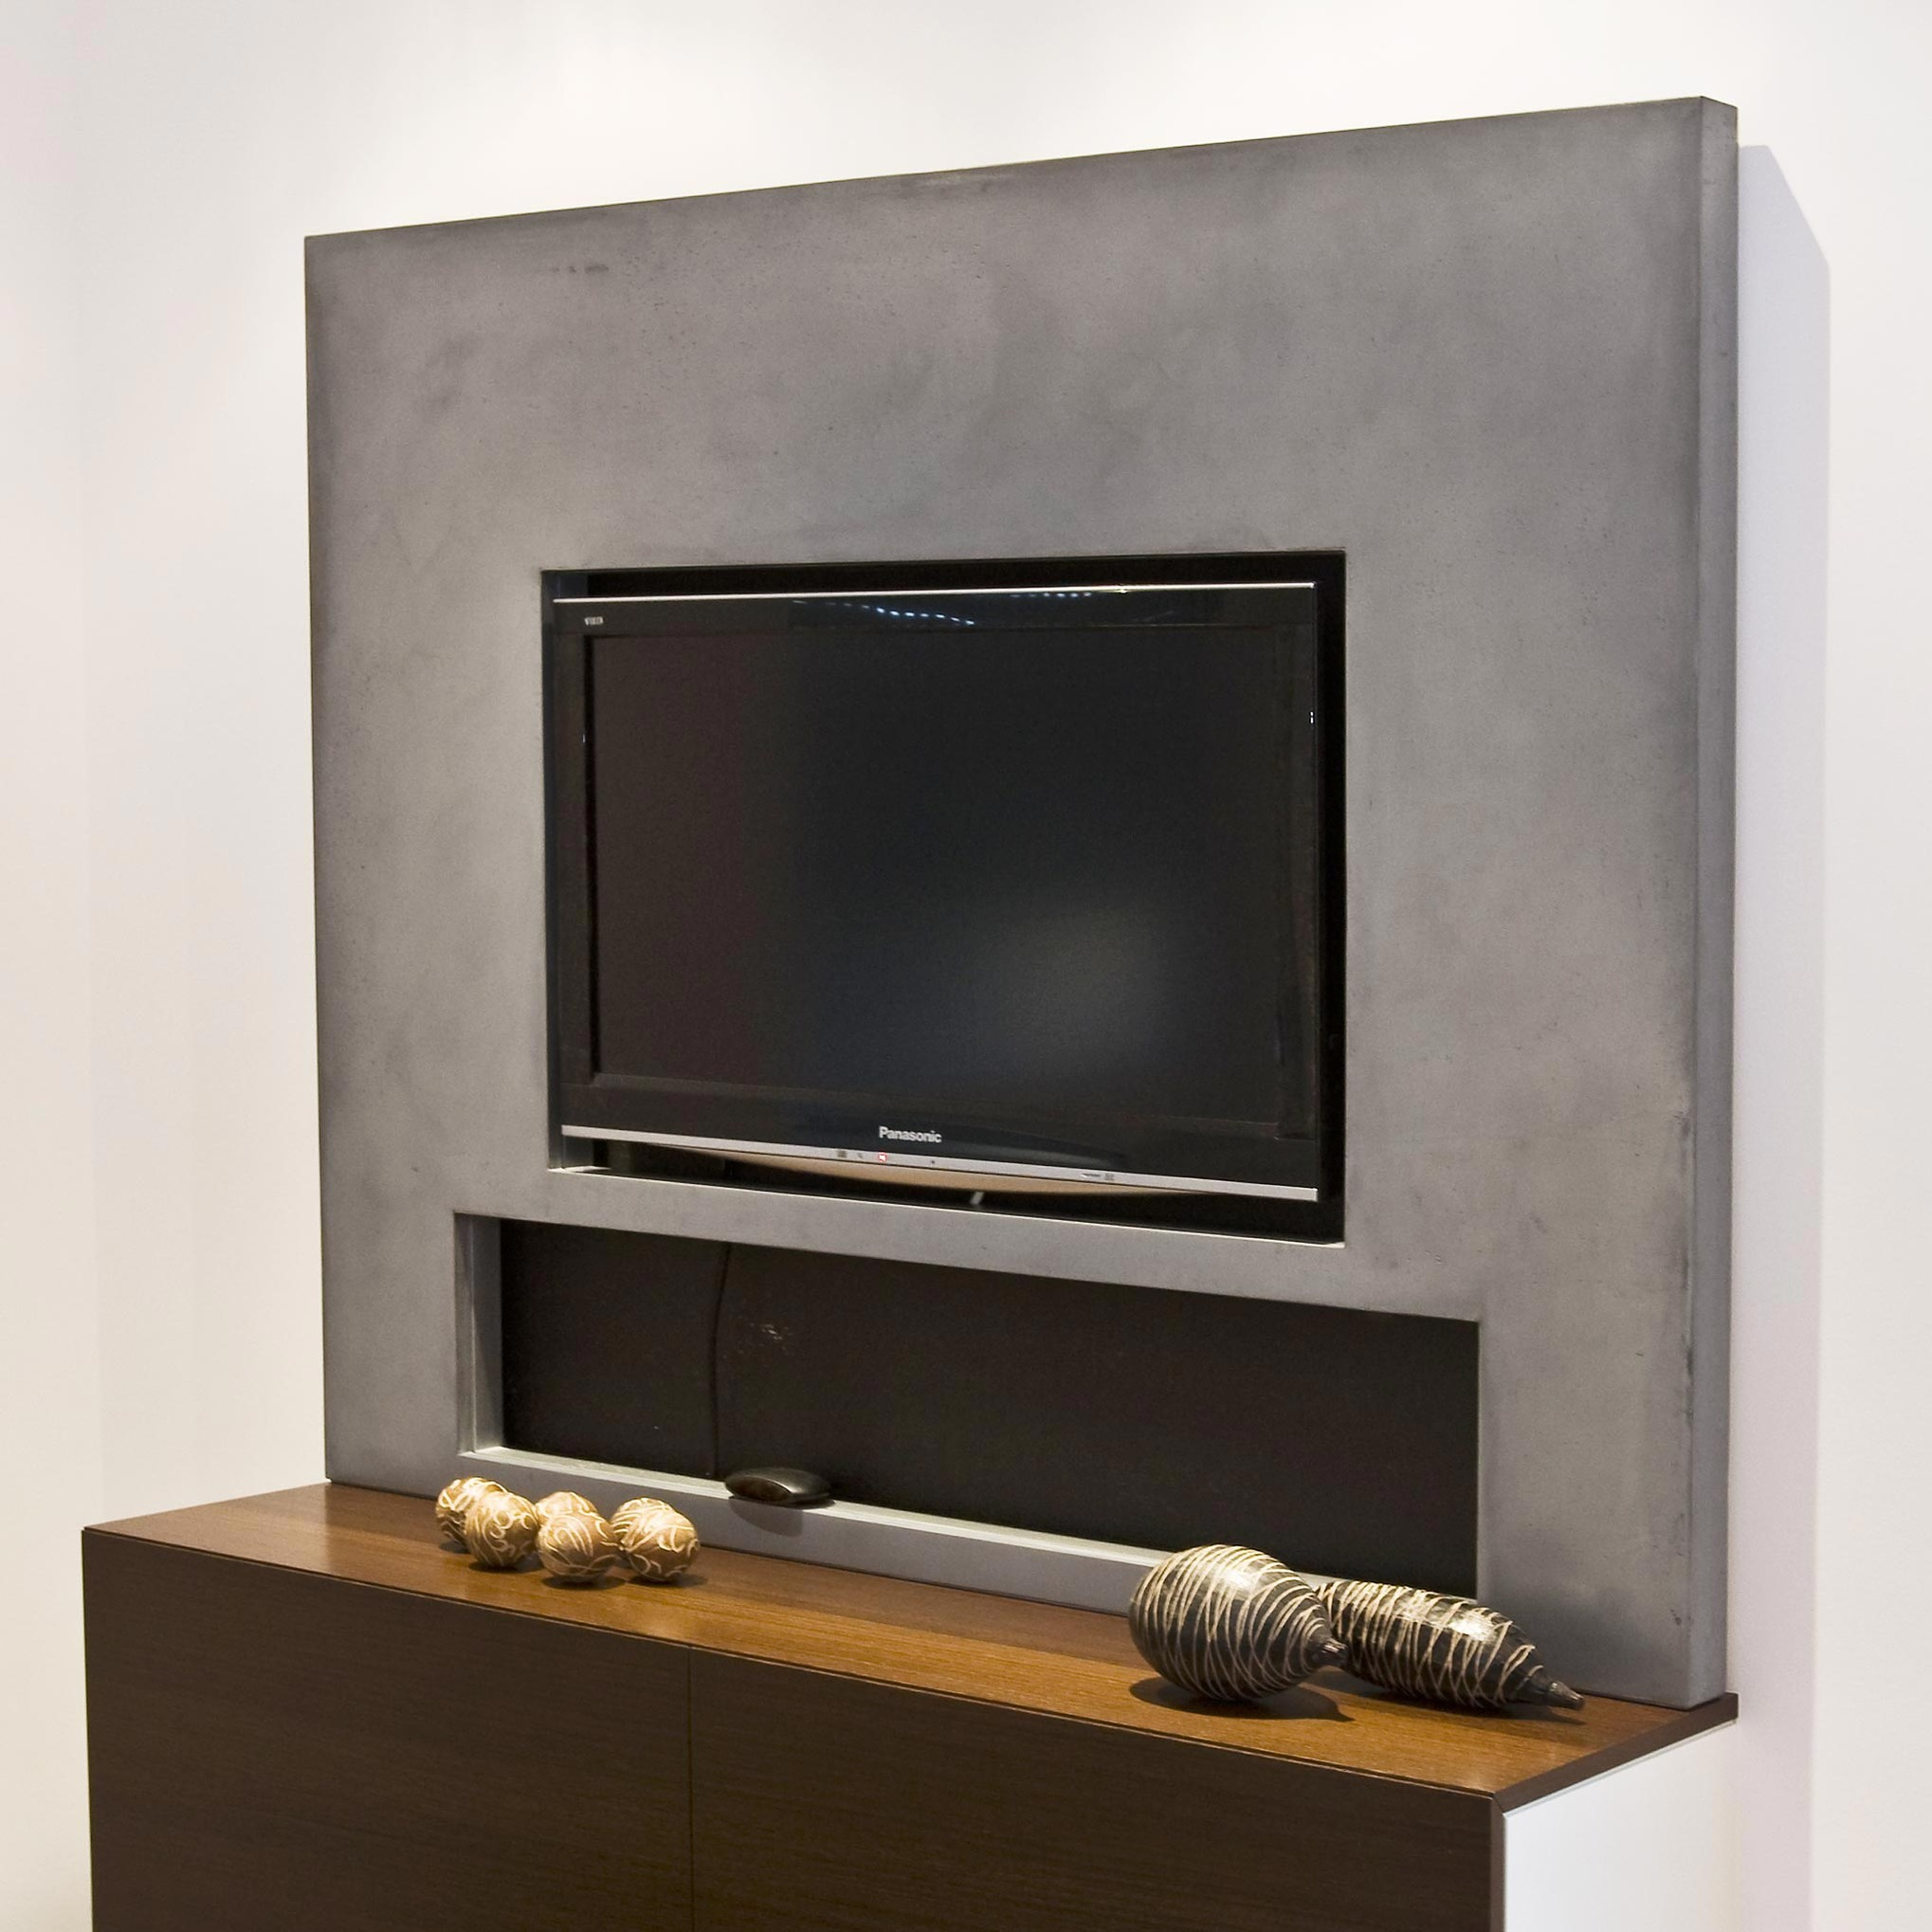 tv wand tv wand pictures to pin on pinterest. Black Bedroom Furniture Sets. Home Design Ideas